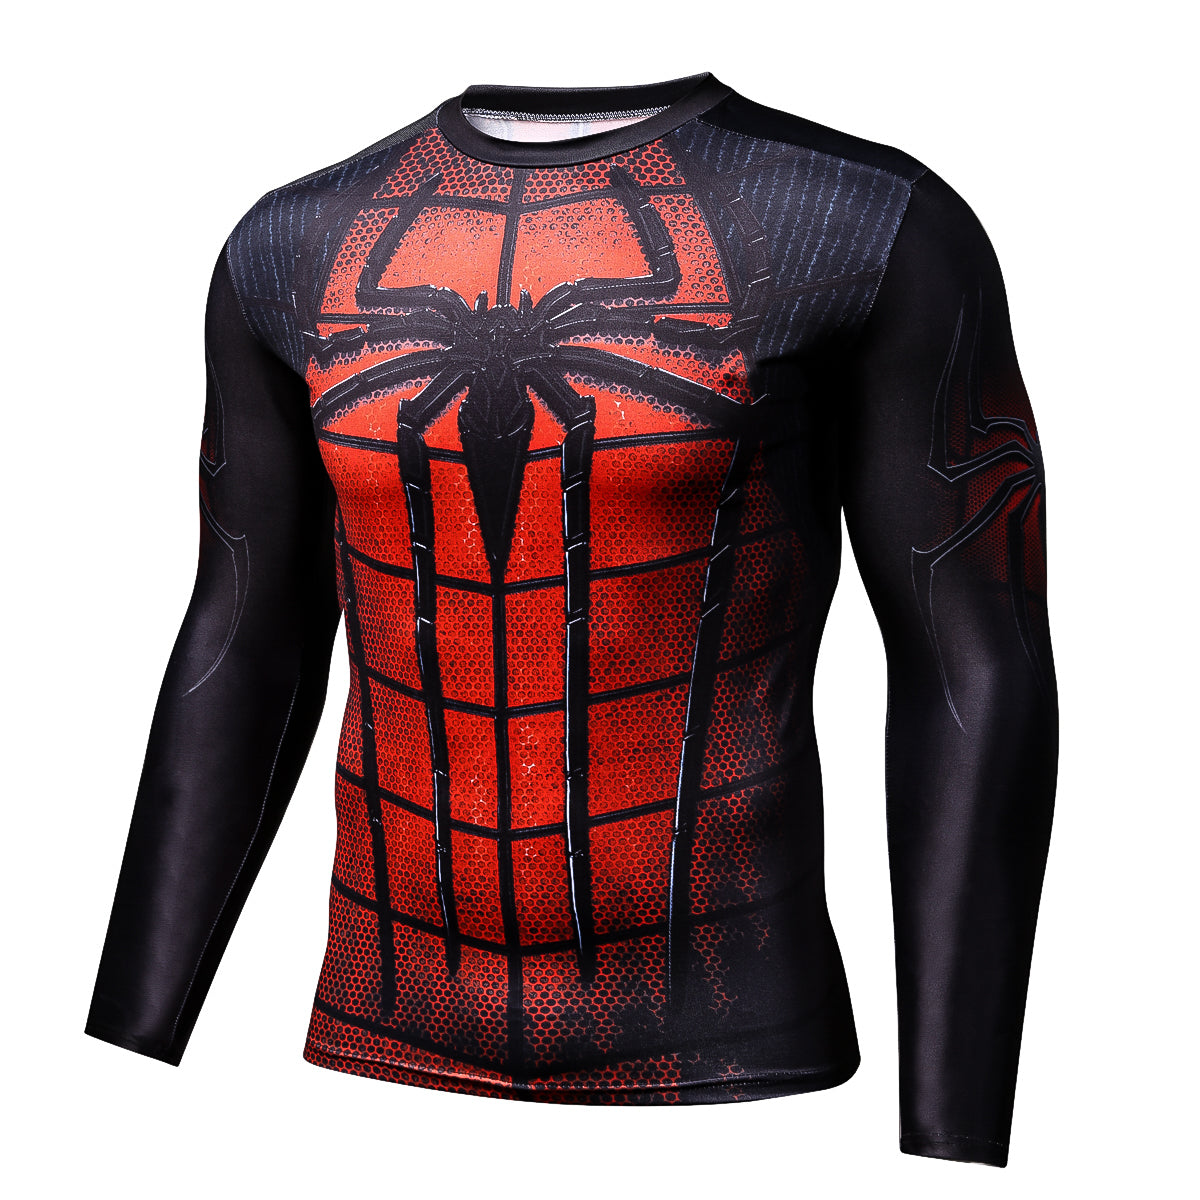 Spiderman Superhero Long Sleeves 3D Print Compression T-shirt